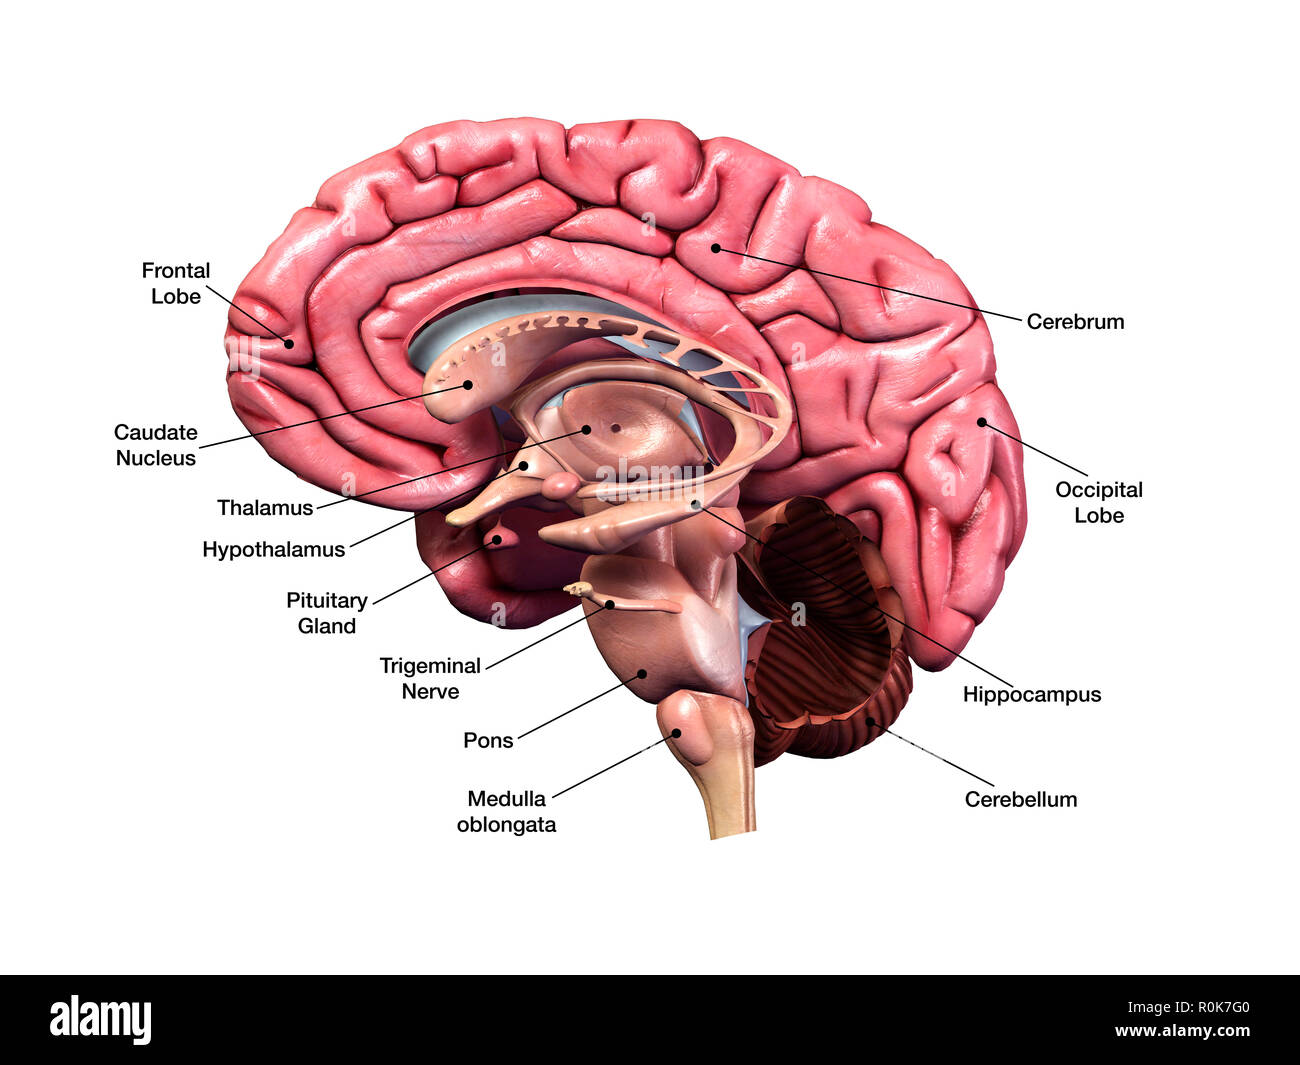 Human brain, sagittal section with labels. - Stock Image